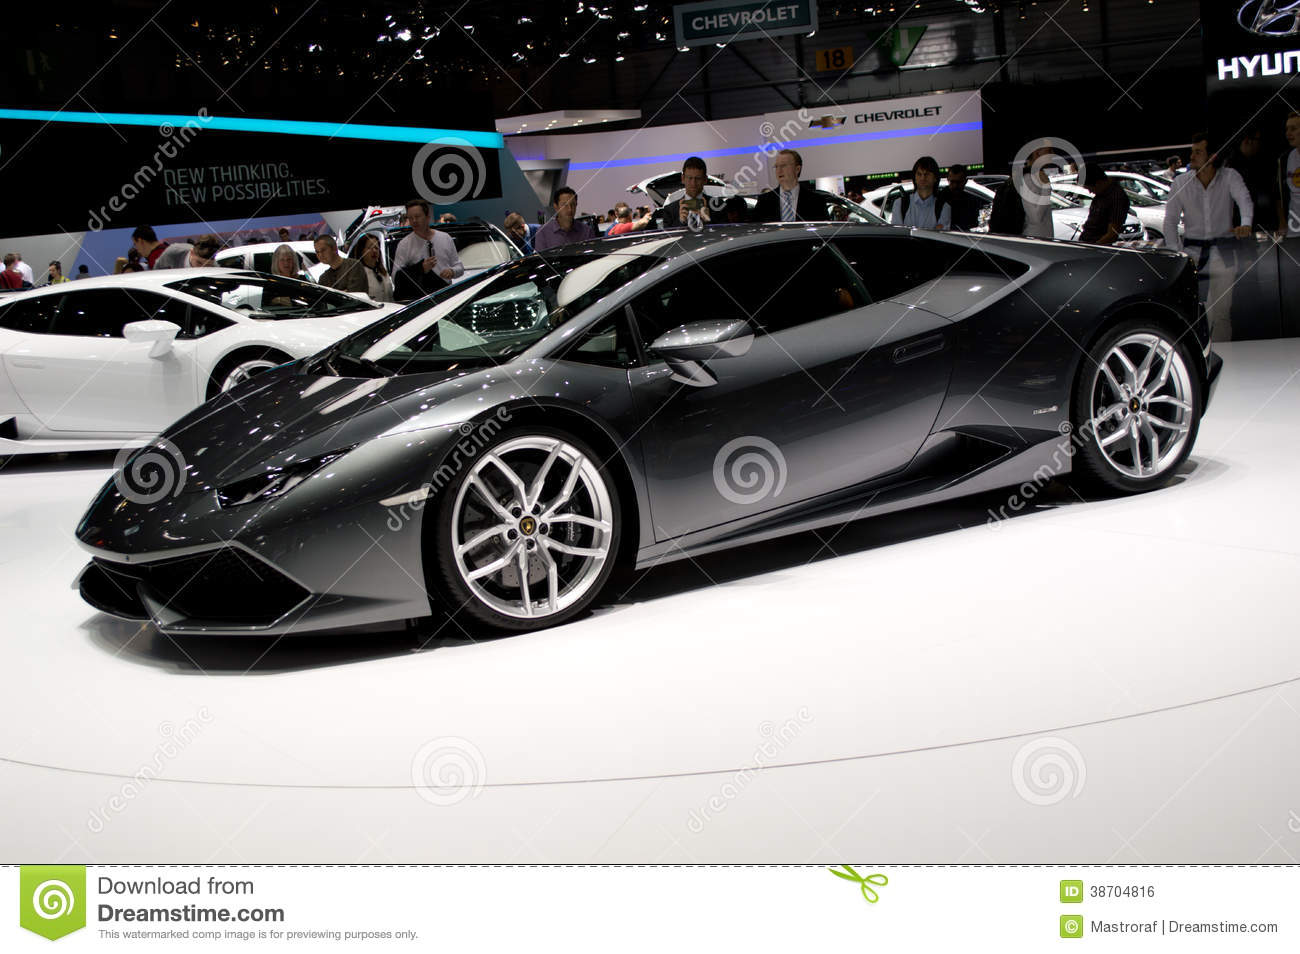 Lamborghini huracan geneva 2014 editorial photo image - Salon de l auto geneve ...